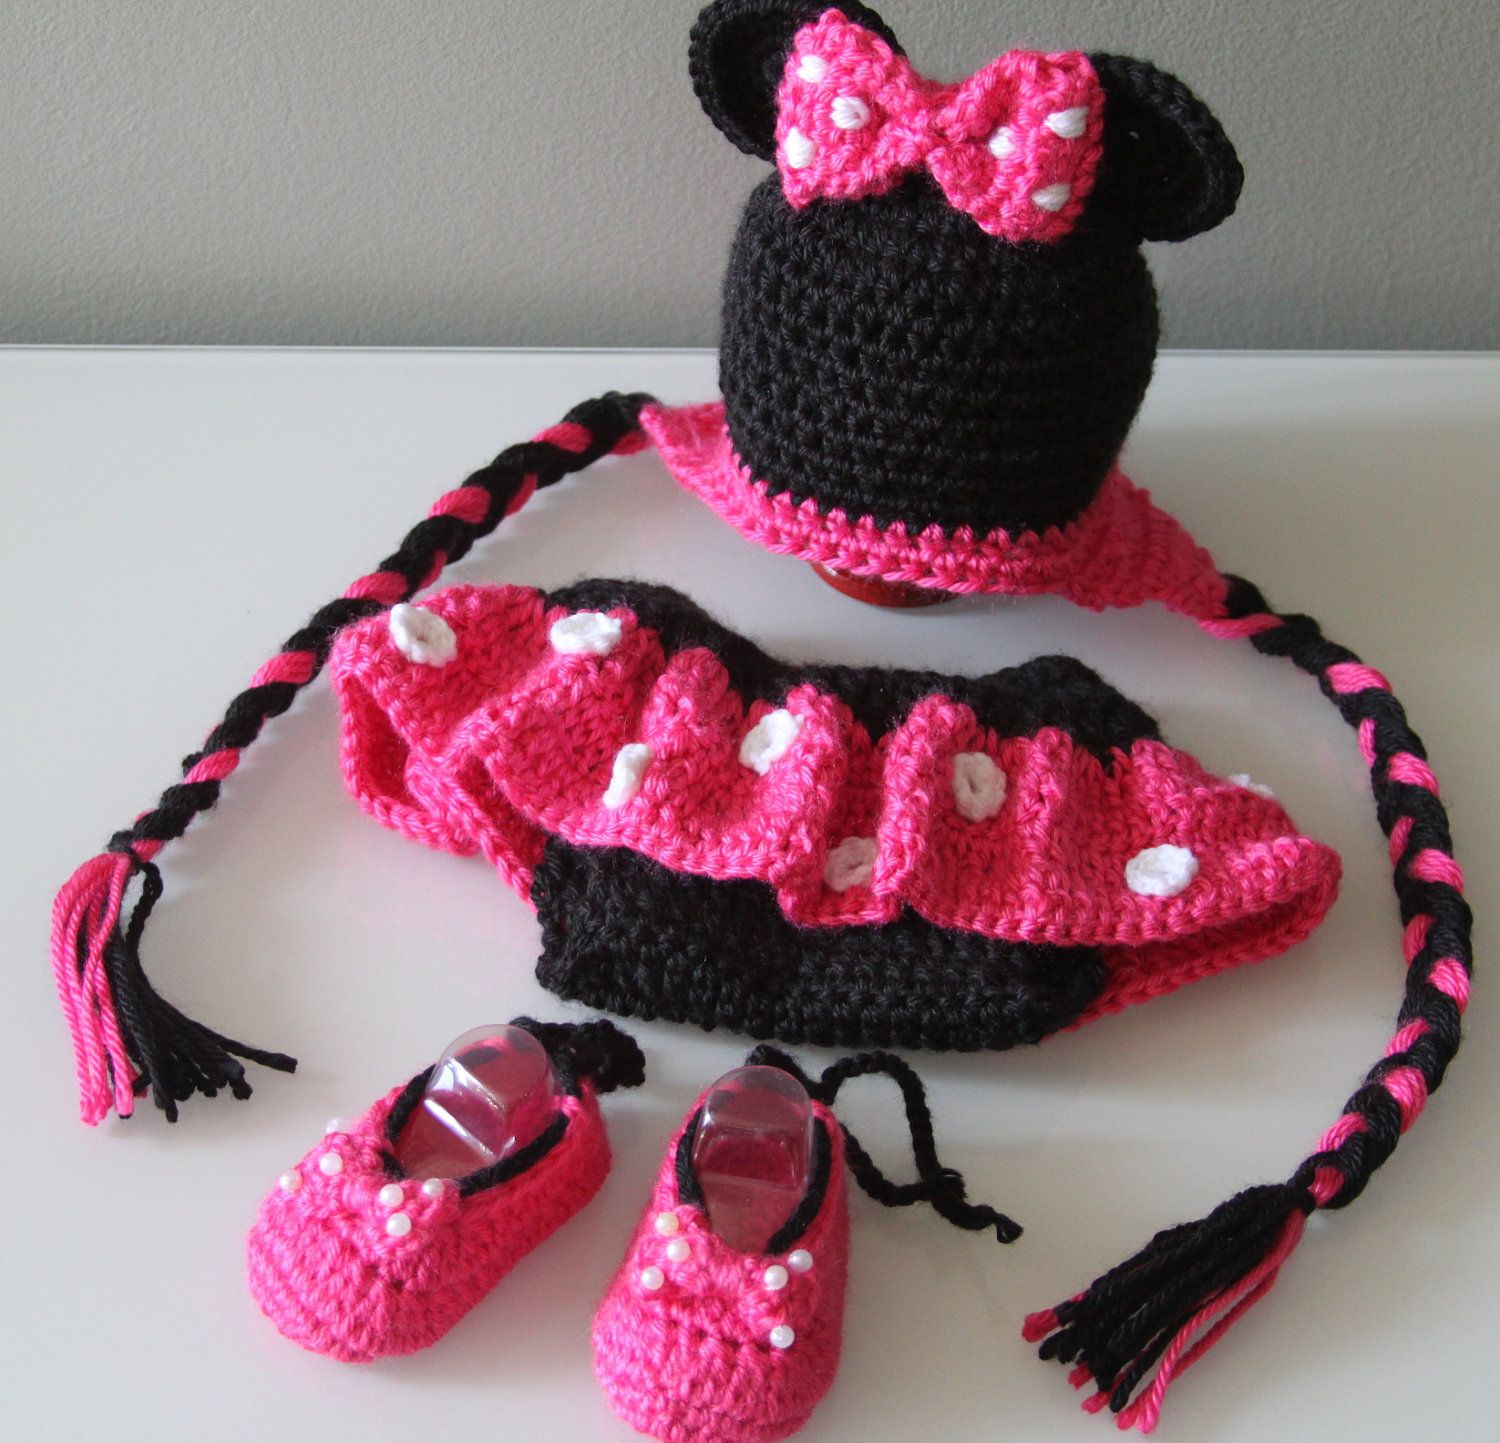 Knitted Minnie Mouse Hat Pattern : Minnie Mouse Crochet Hat, Diaper Cover and Shoes Minnie mouse